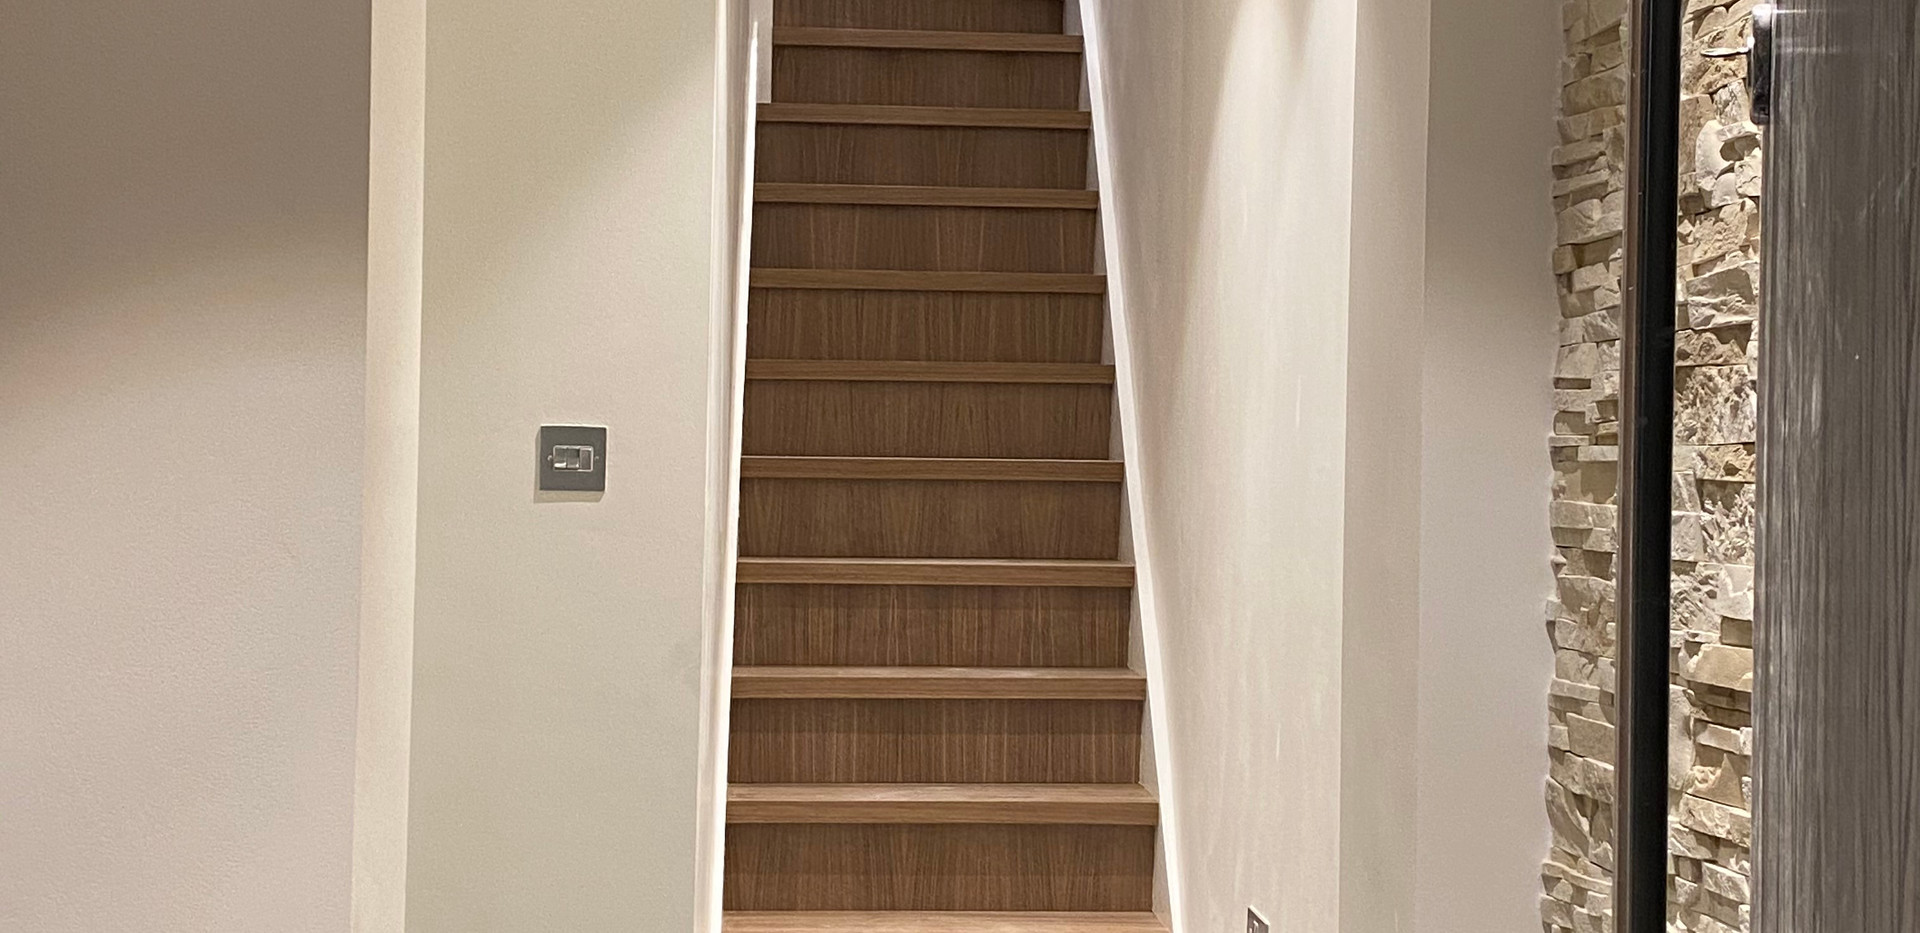 New Staircase Design